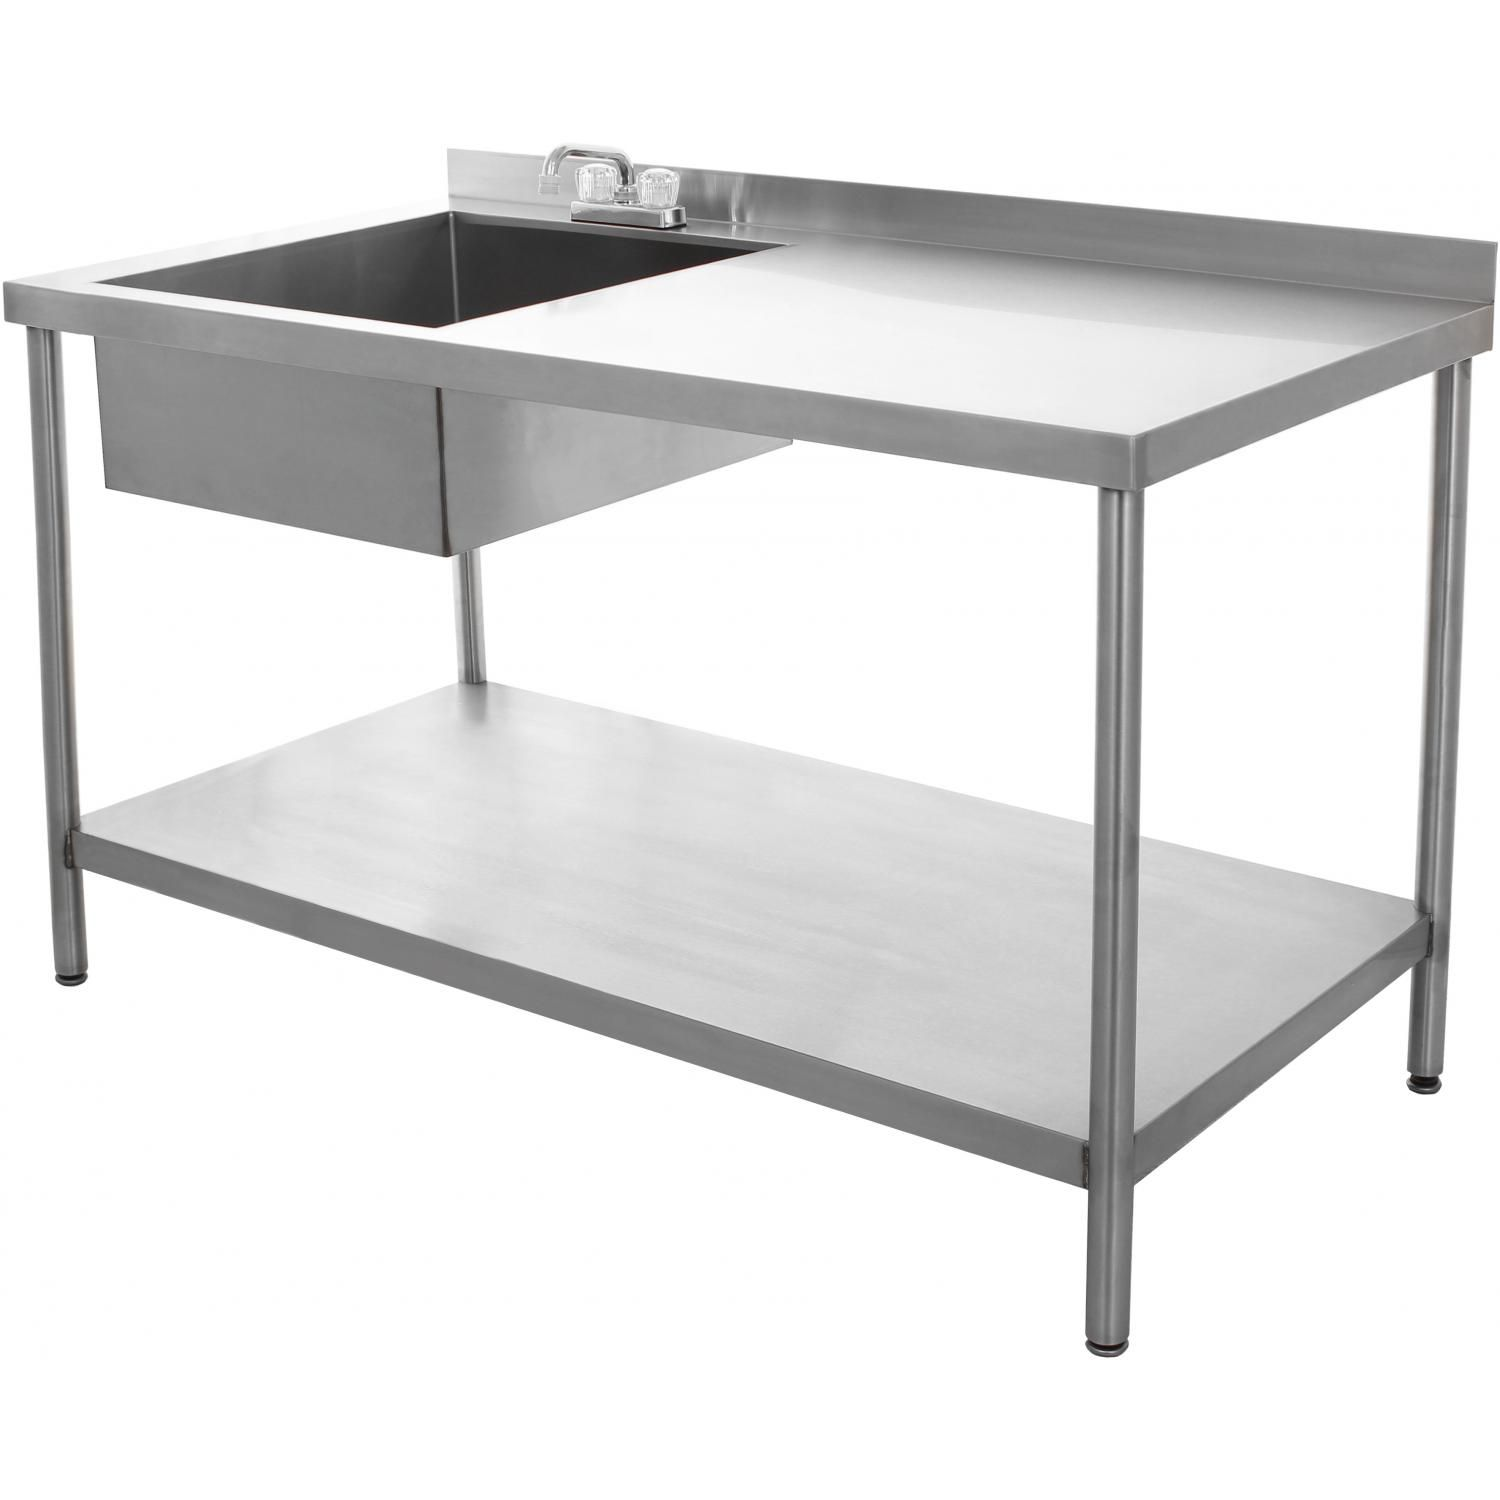 BBQGuys.com 30x60 Stainless Steel Utility Table With Sink And Faucet : BBQ  Guys